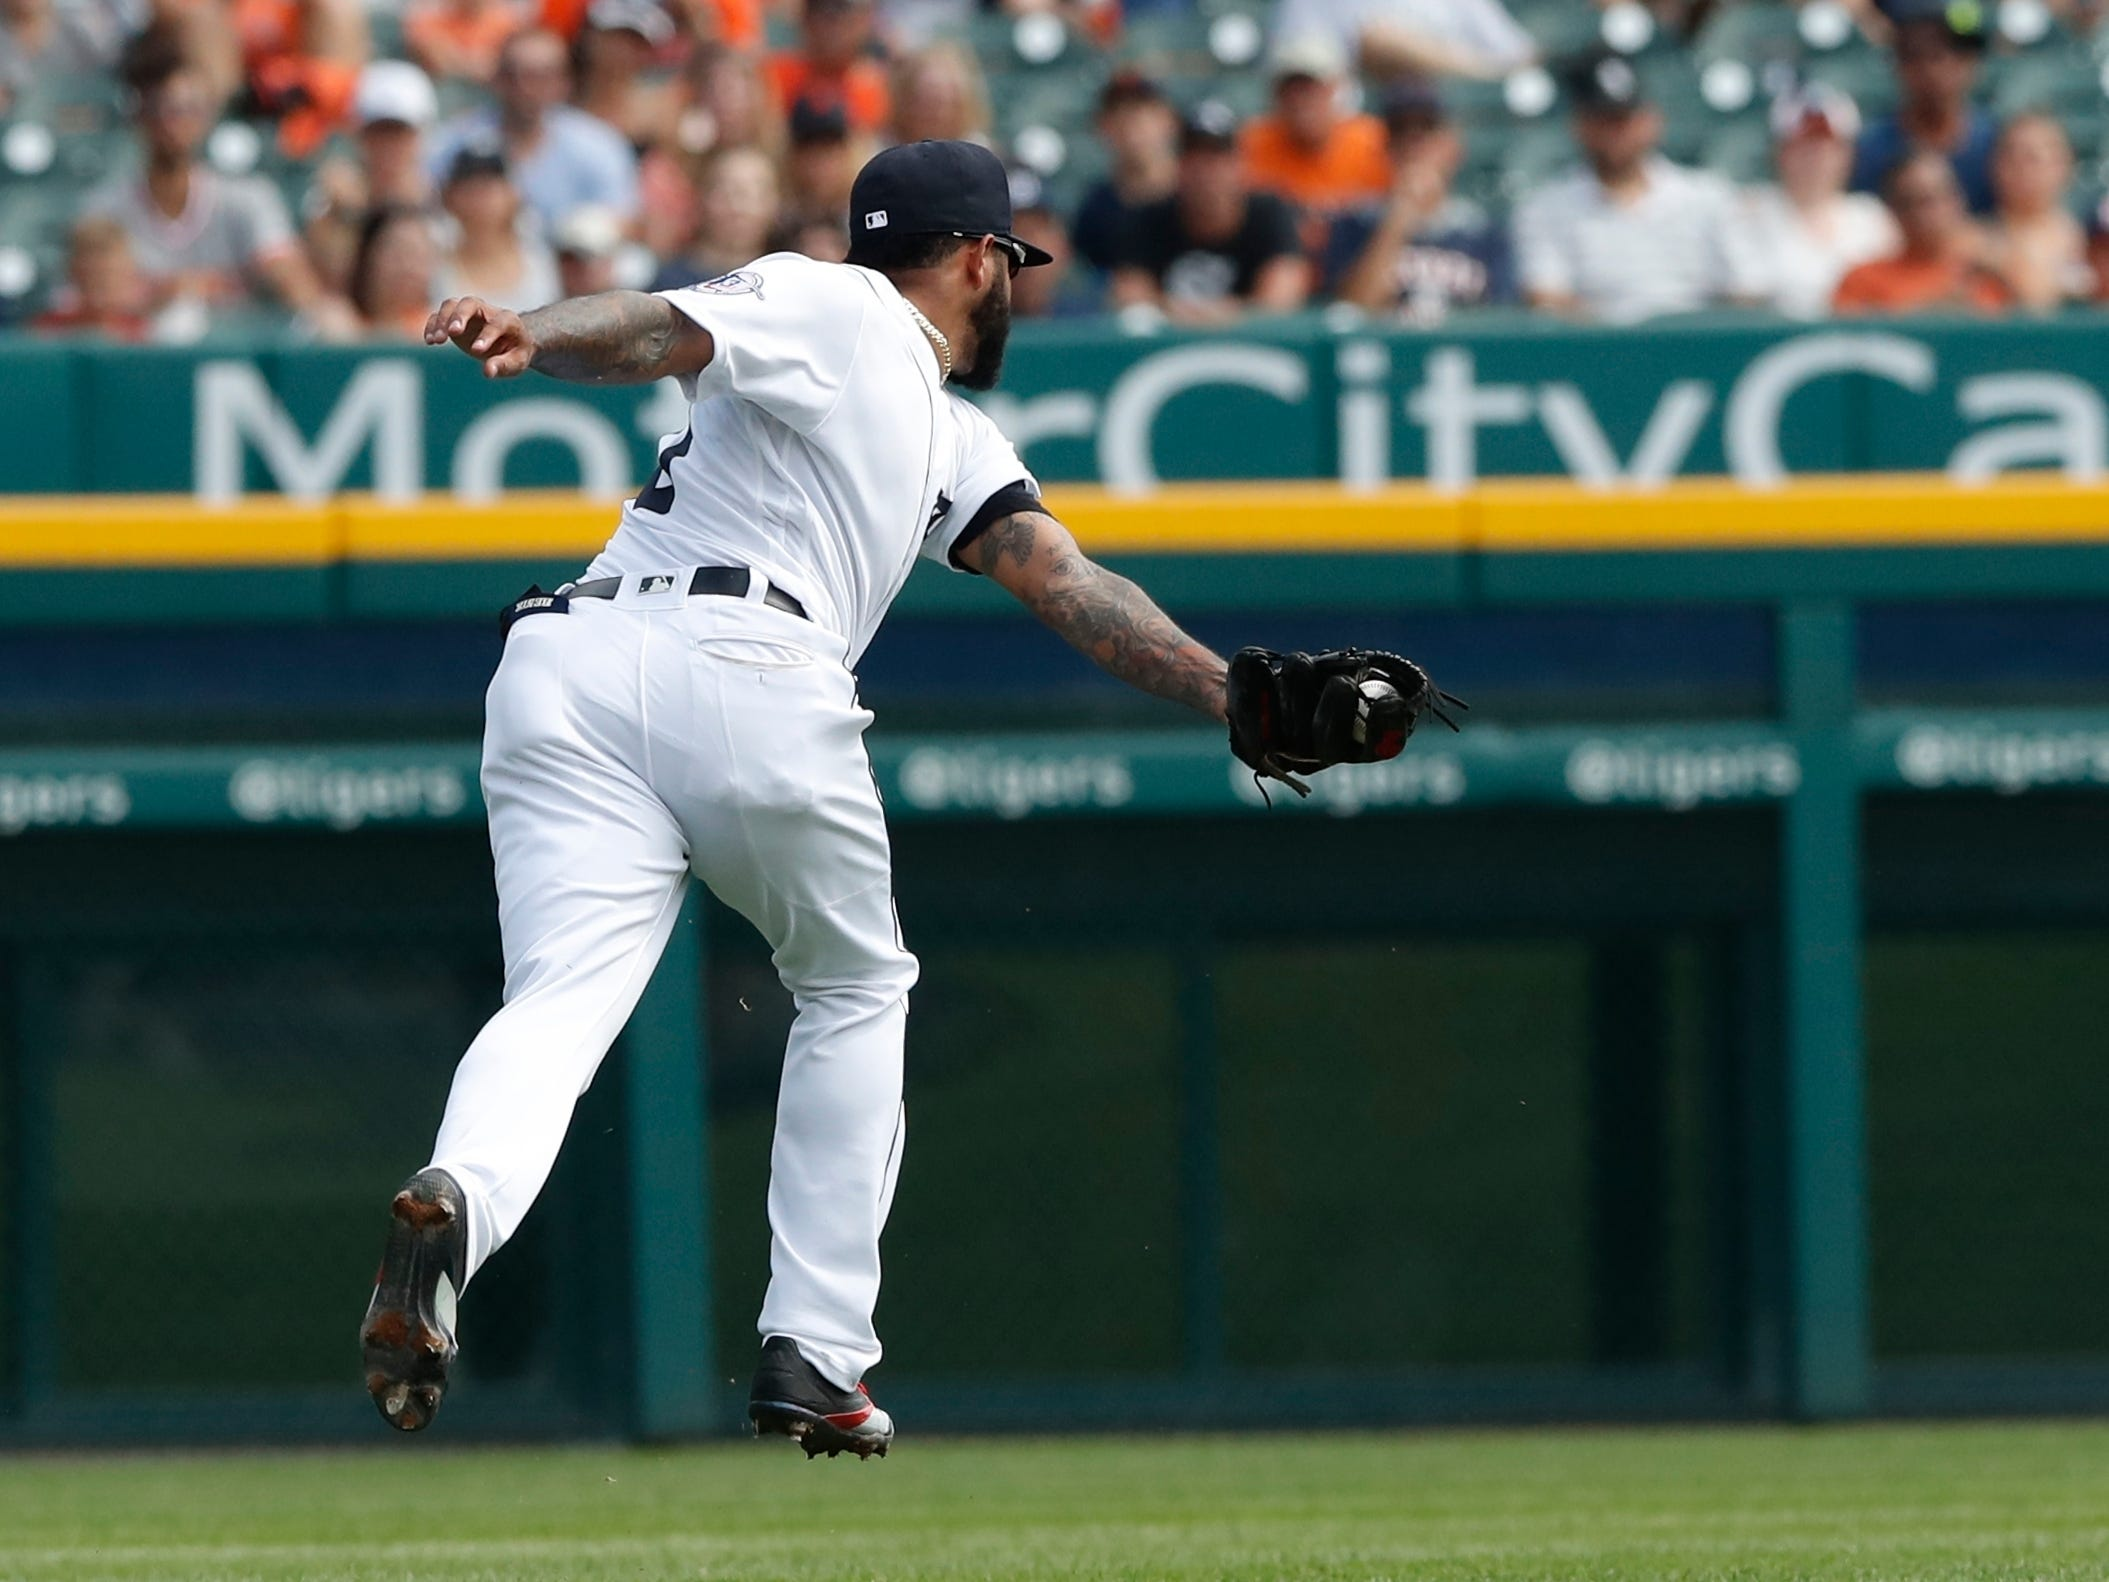 Detroit Tigers shortstop Ronny Rodriguez chases and catches a pop-up for an out hit by Chicago White Sox's Nicky Delmonico during the fourth inning.